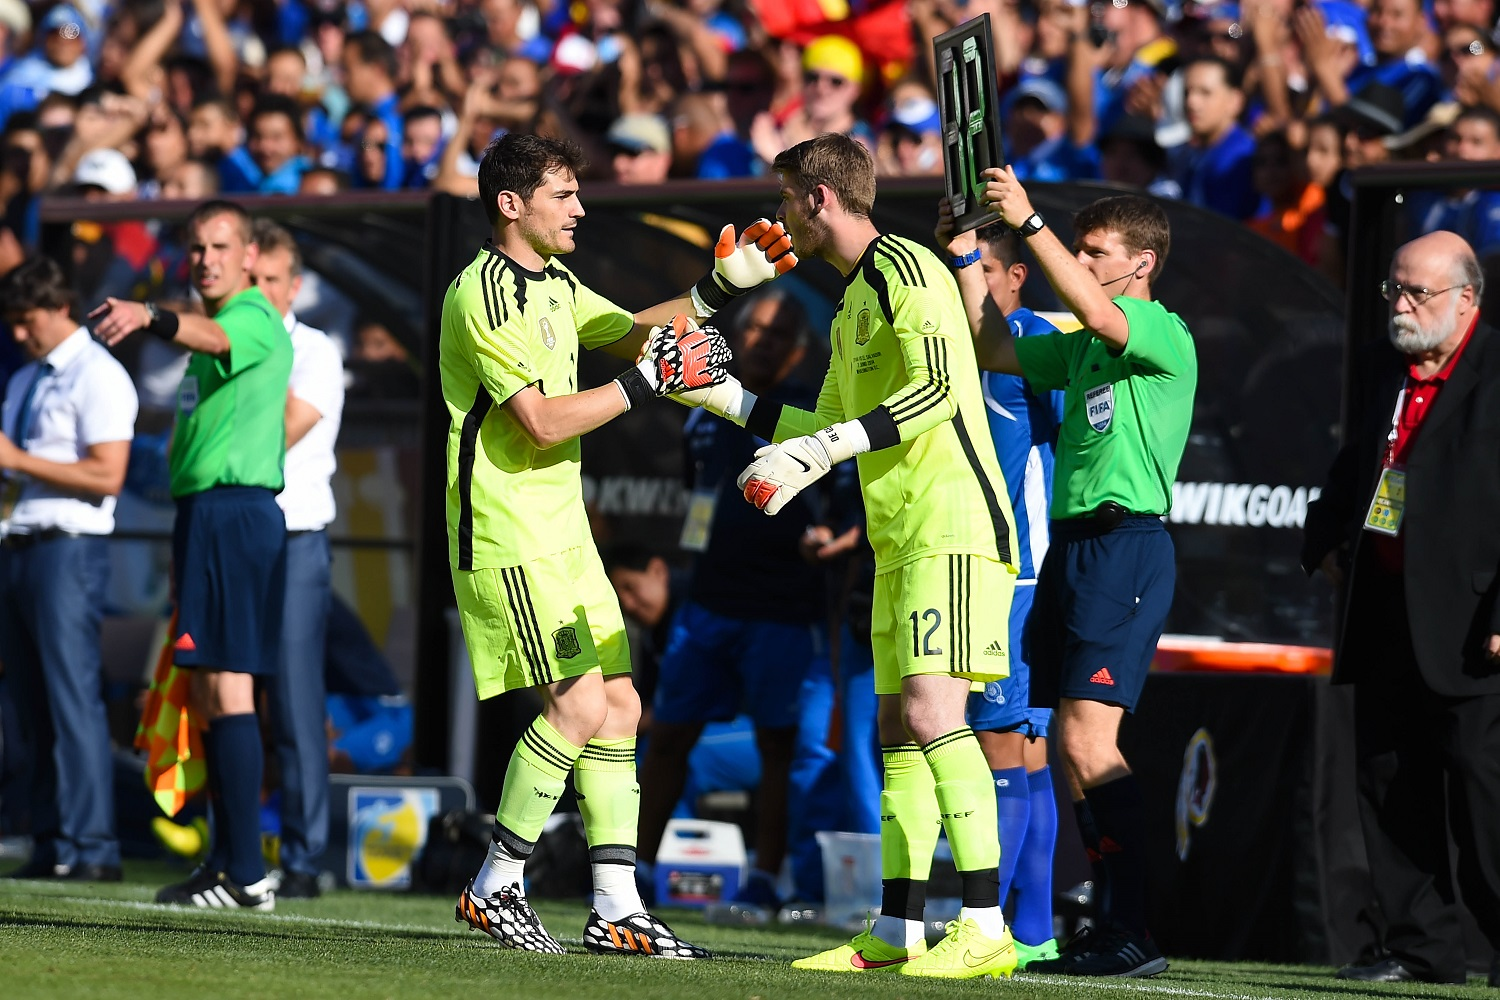 LANDOVER, MD - JUNE 07:  Iker Casillas of Spain comes off by David de Gea of Spain during an international friendly match between El Salvador and Spain at FedExField on June 7, 2014 in Landover, Maryland.  (Photo by David Ramos/Getty Images)